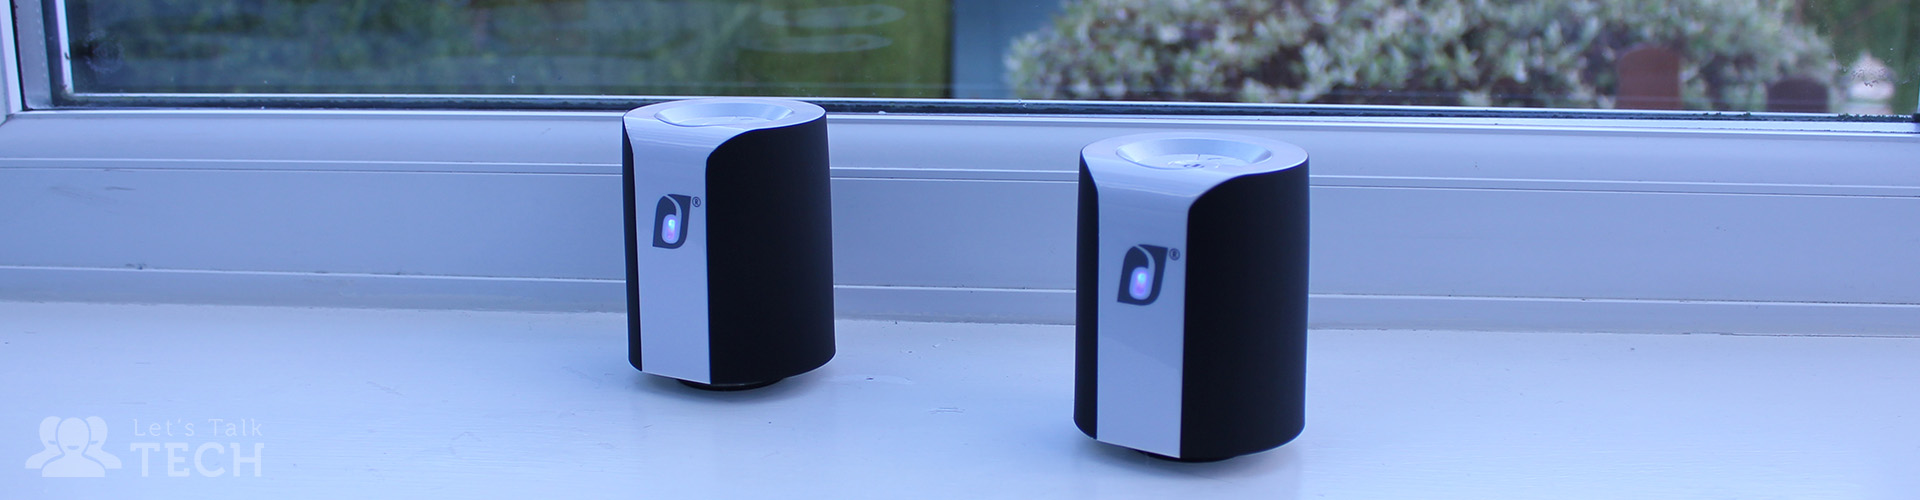 Damson Jet: Bluetooth Speakers With Booming Sound